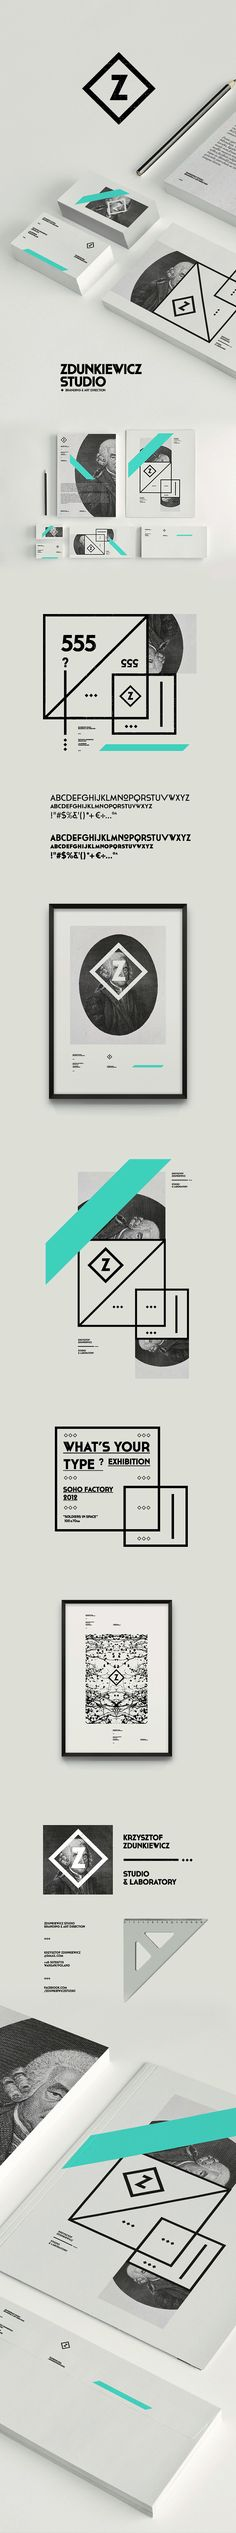 Zdunkiewicz Studio / Self Promotion on Behance #identity